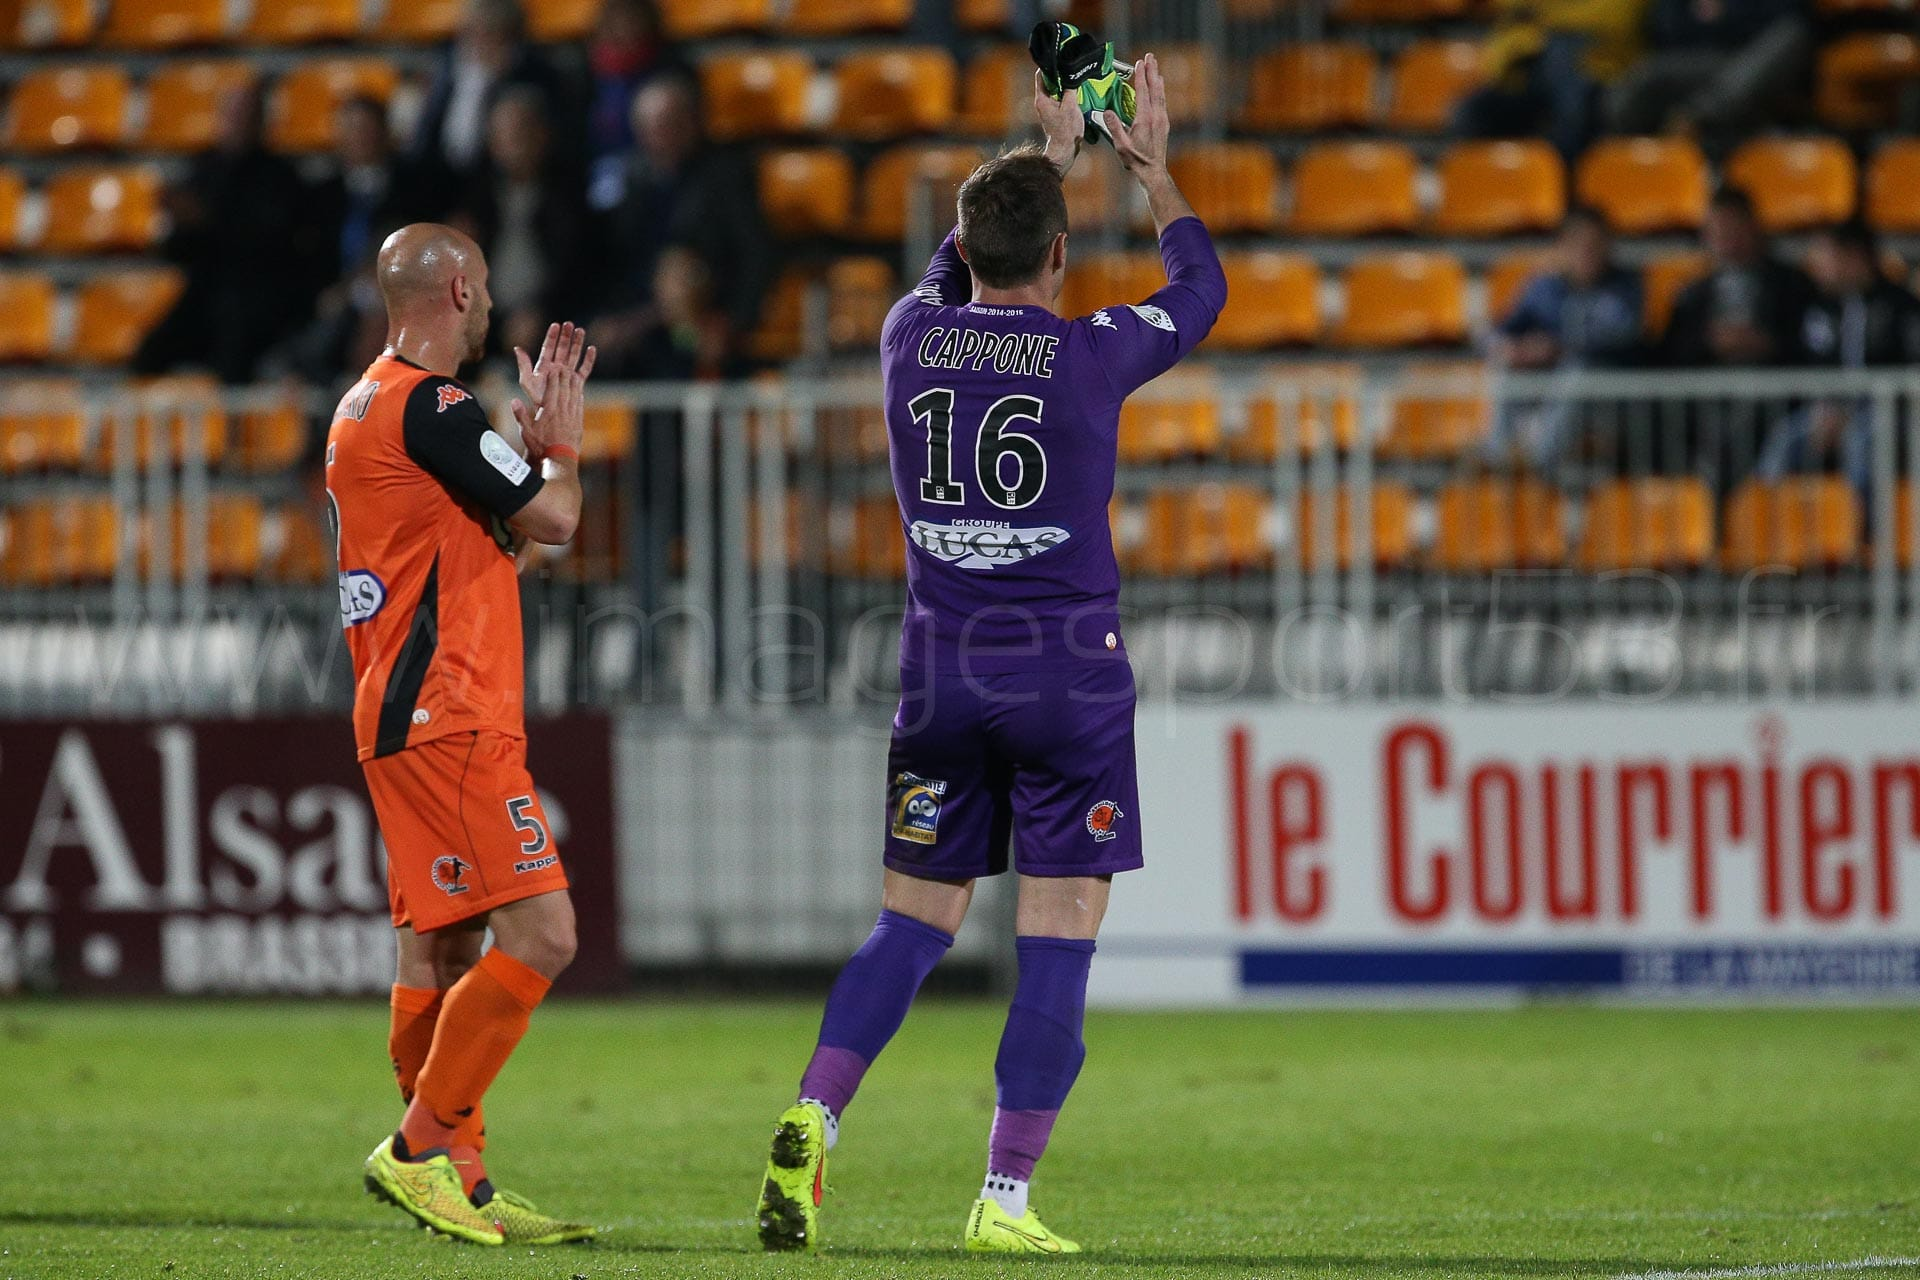 Ludovic GUERRIERO (Stade Lavallois),Lionel CAPPONE (Stade Lavall